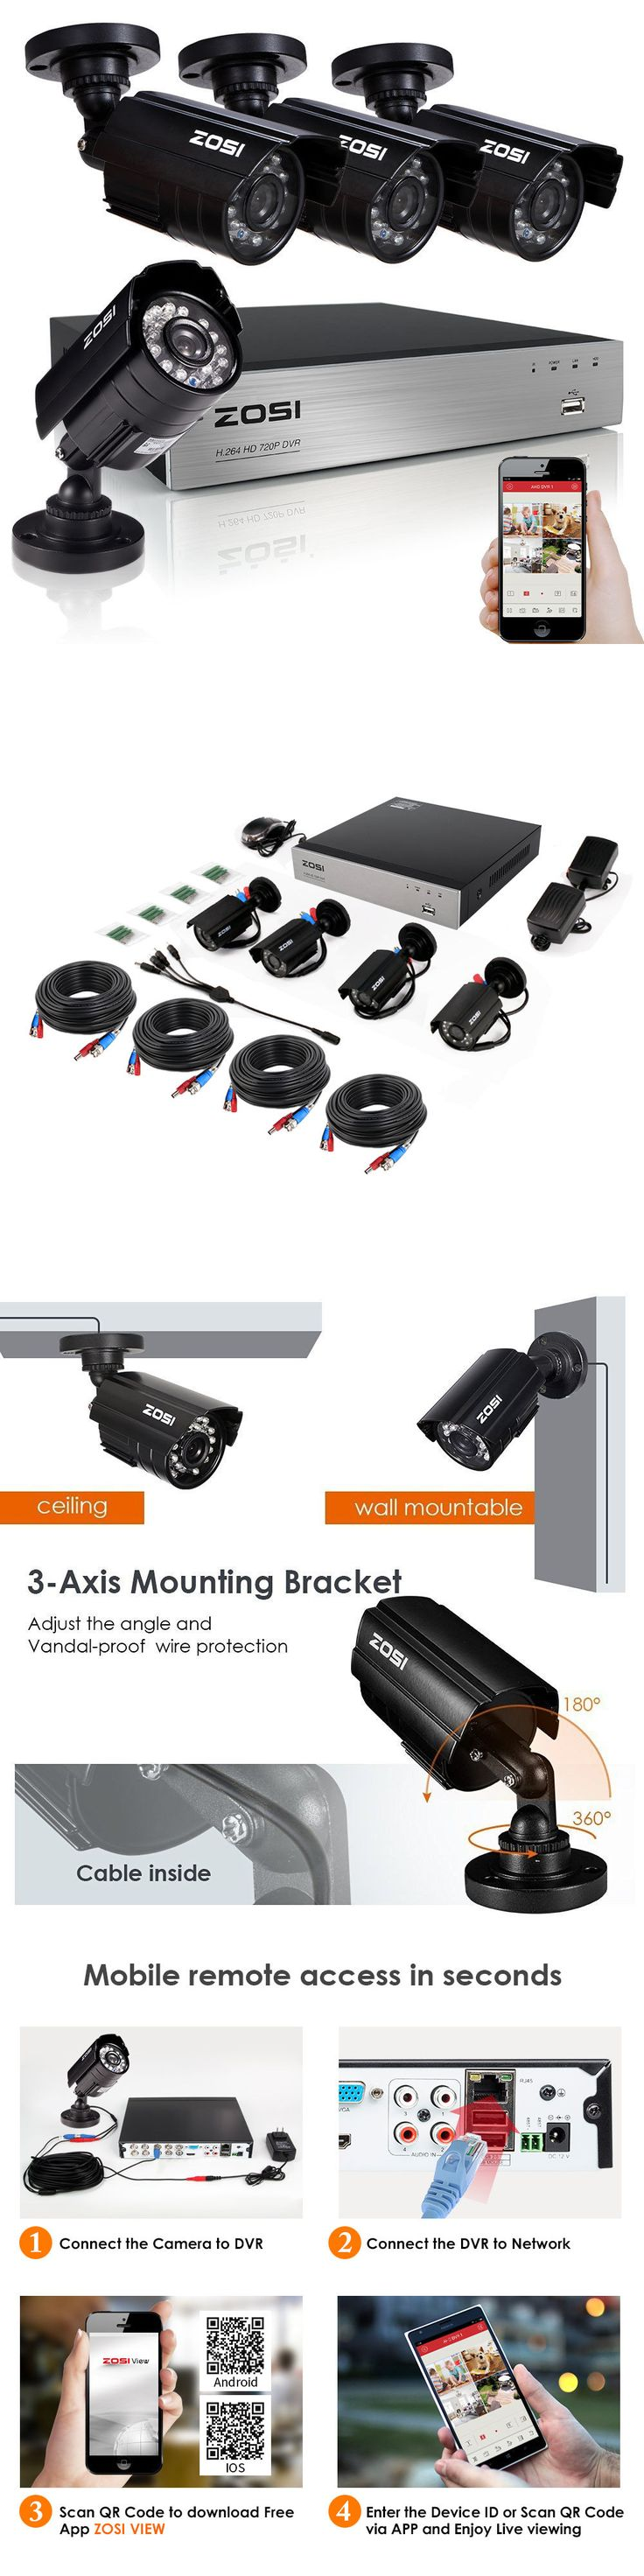 Surveillance Security Systems: Zosi Hd 720P 4Ch Hdmi Dvr 1500Tvl Outdoor Ir Cctv Home Security Cameras System BUY IT NOW ONLY: $85.99